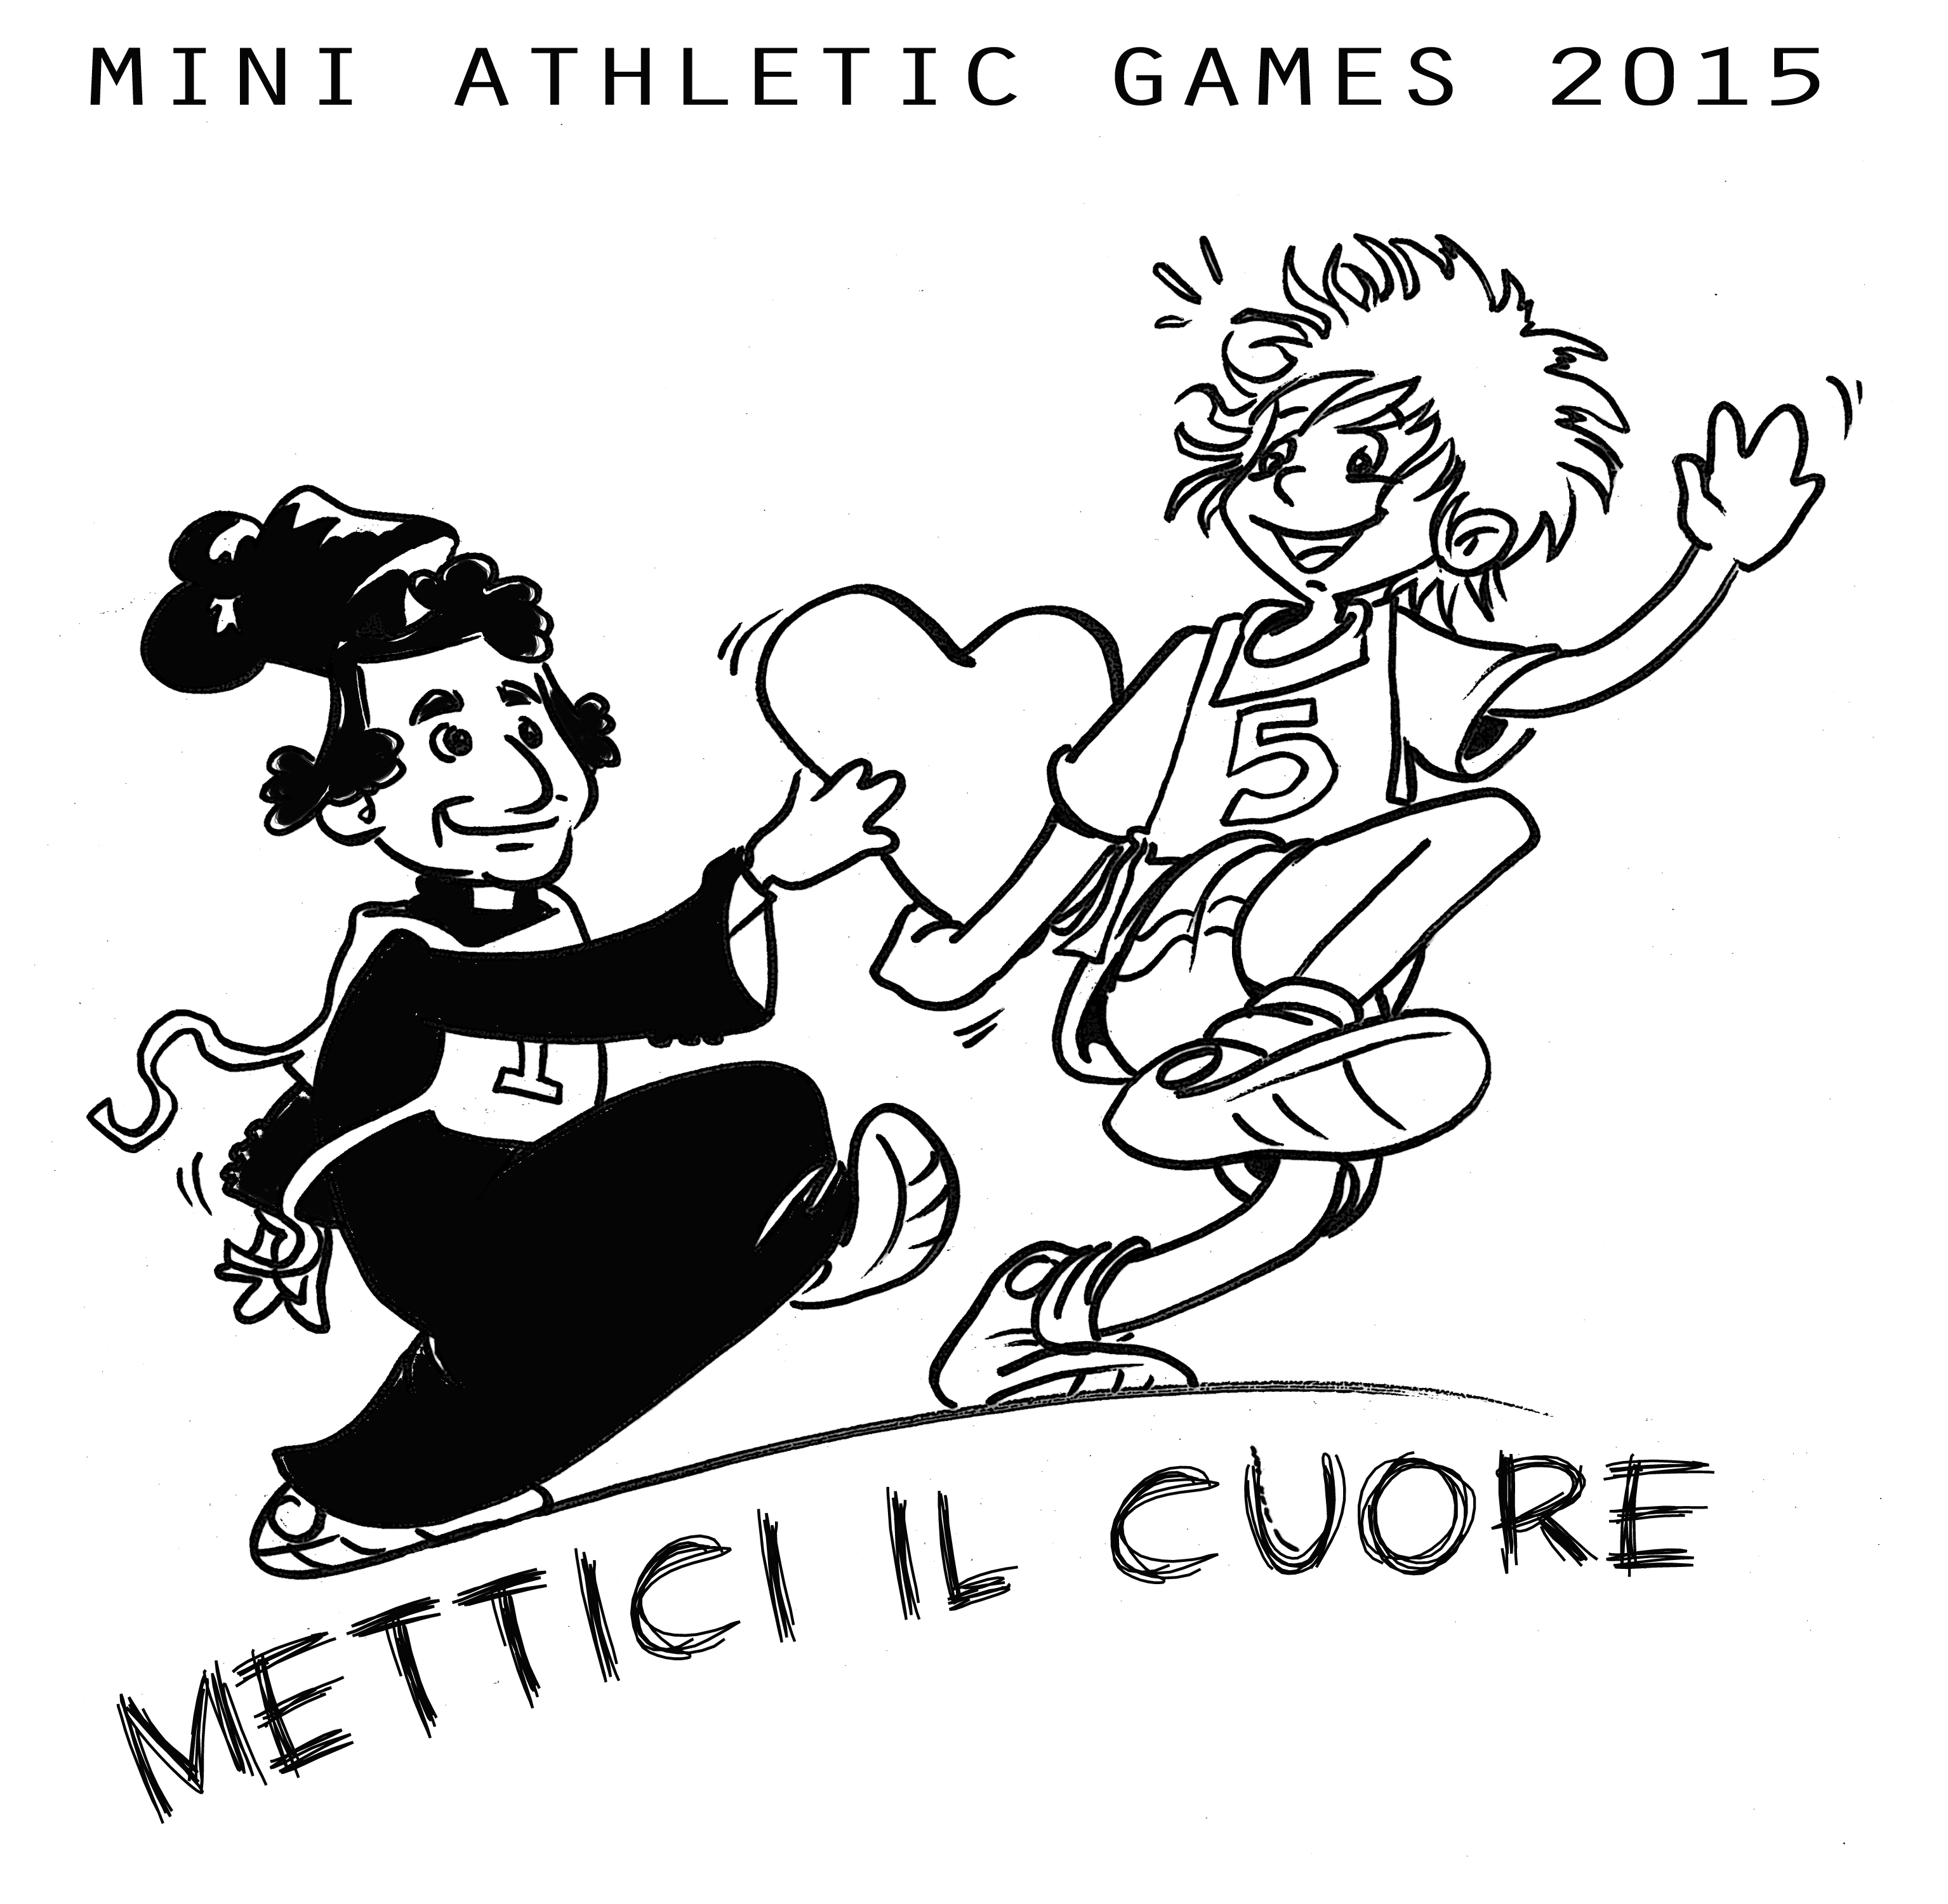 mini atletic games 2015